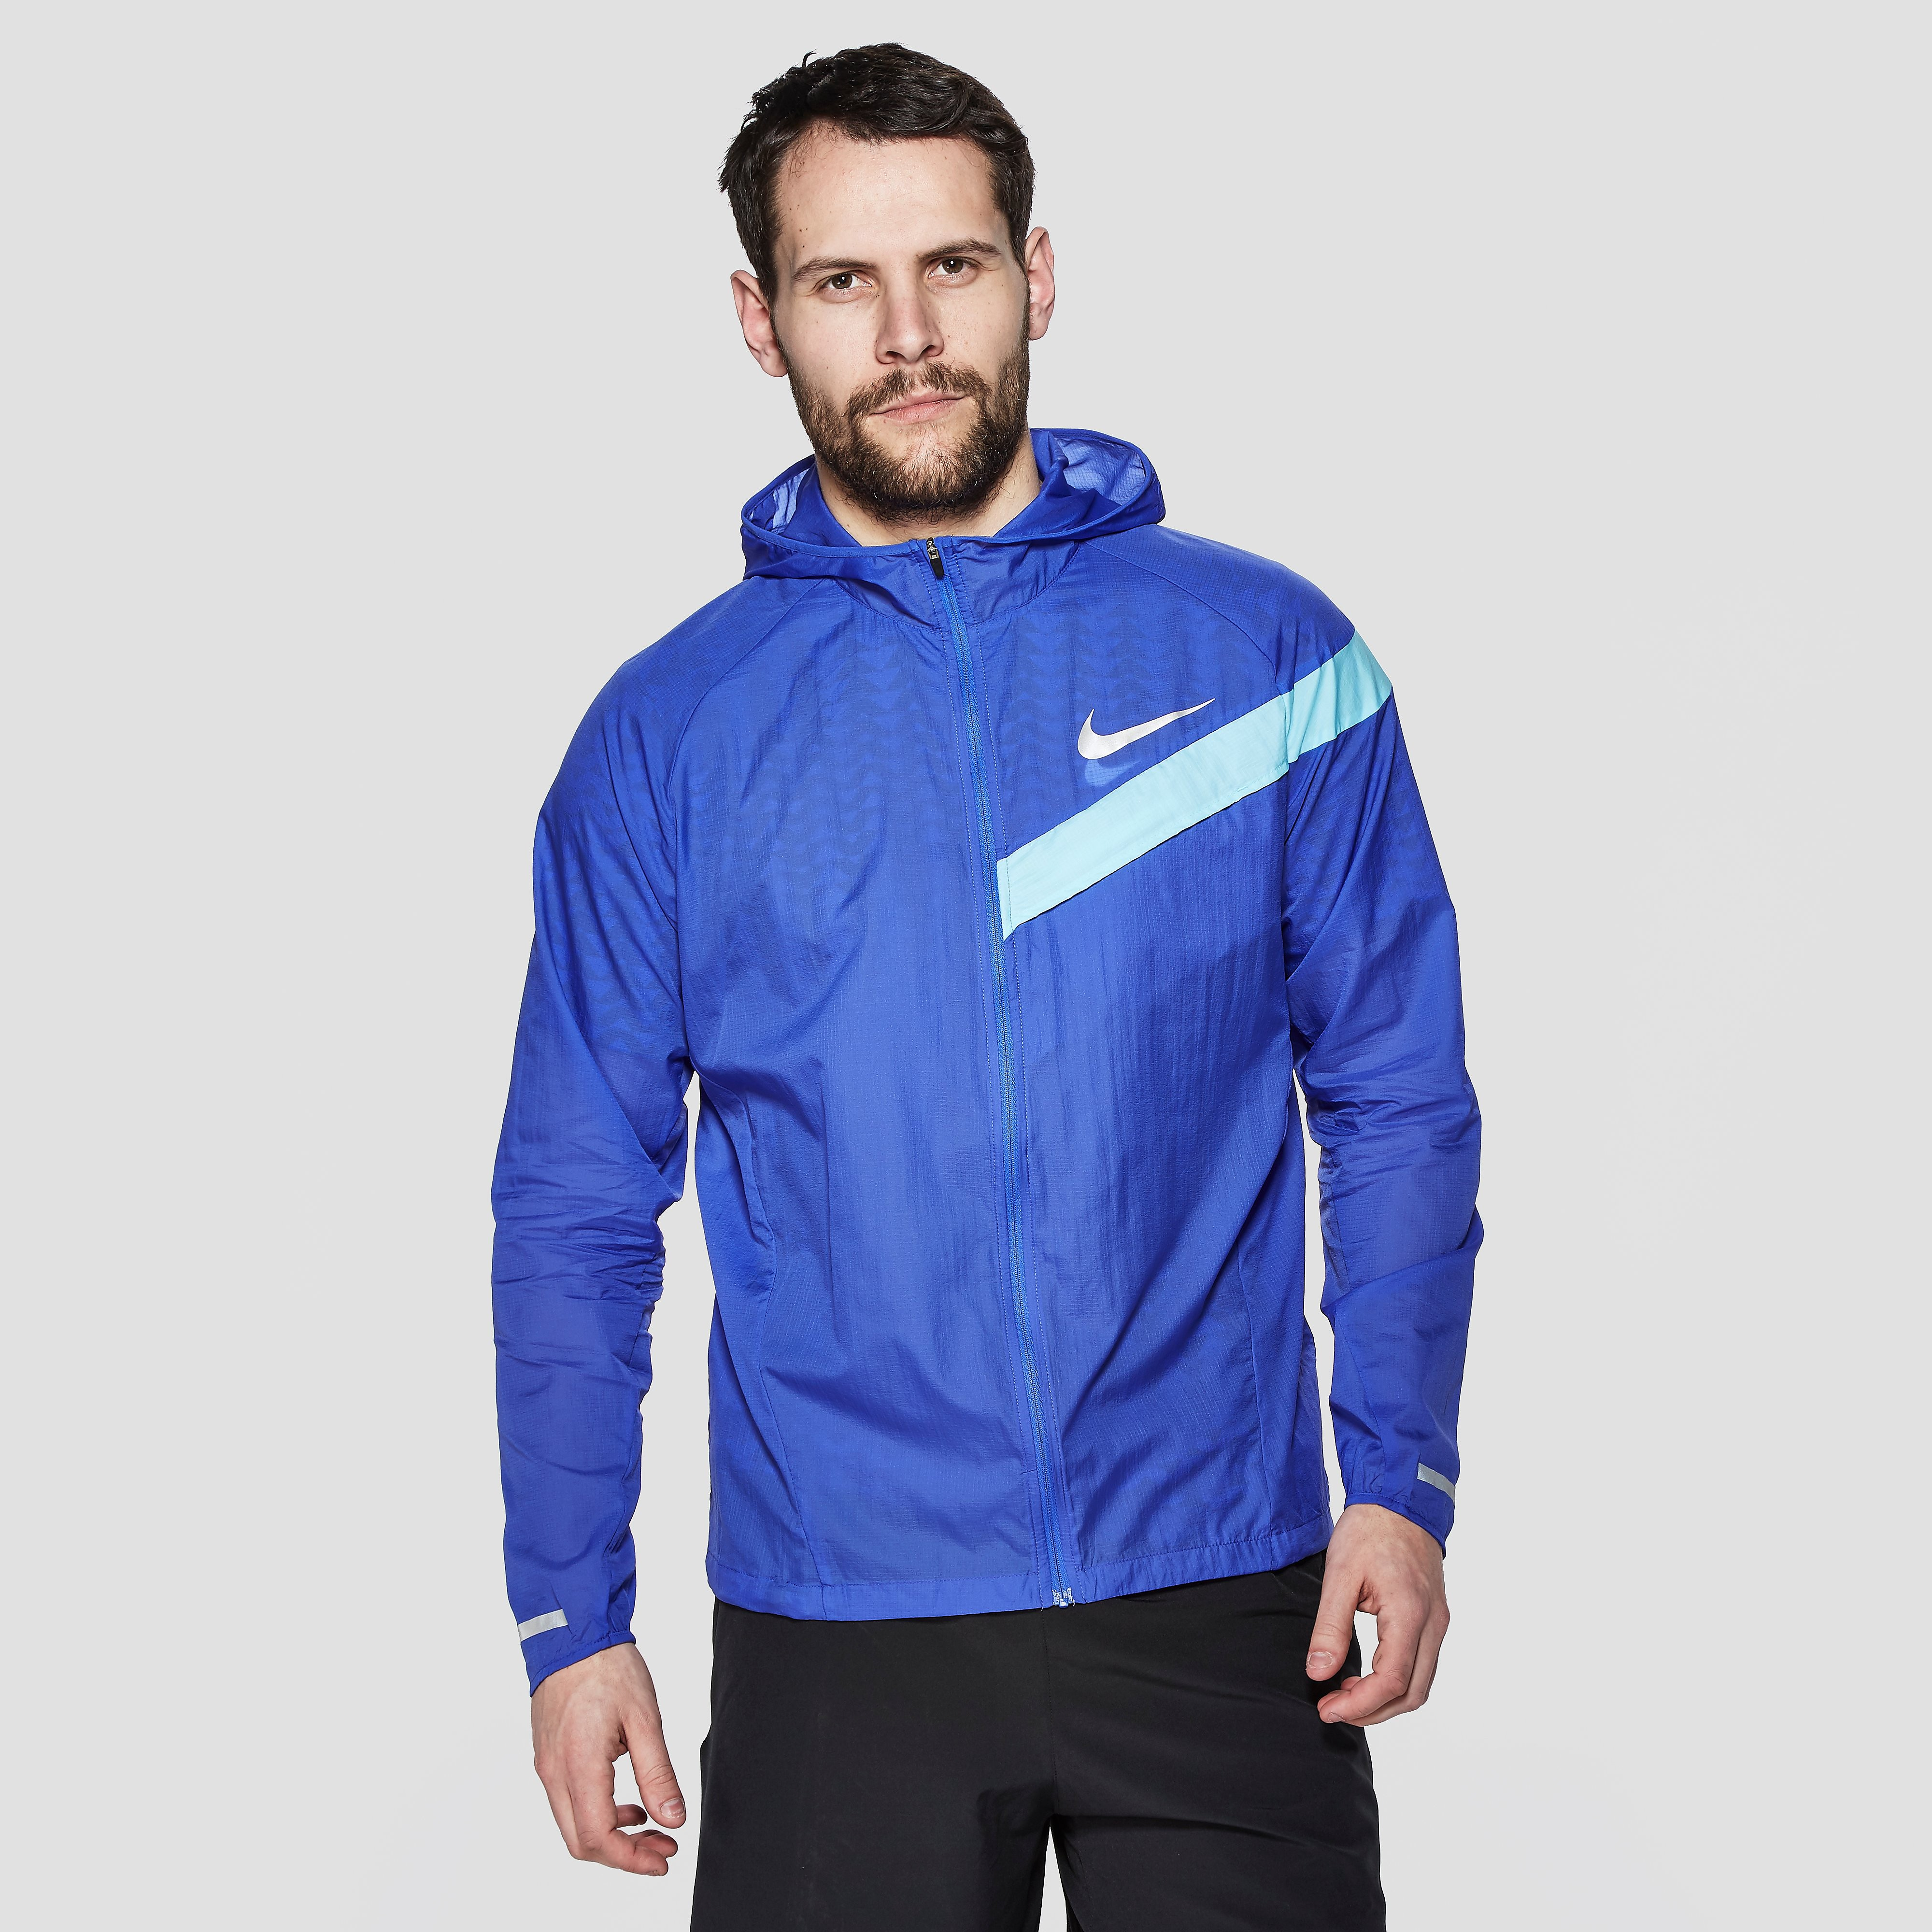 Nike Impossibly Light Men's Jacket